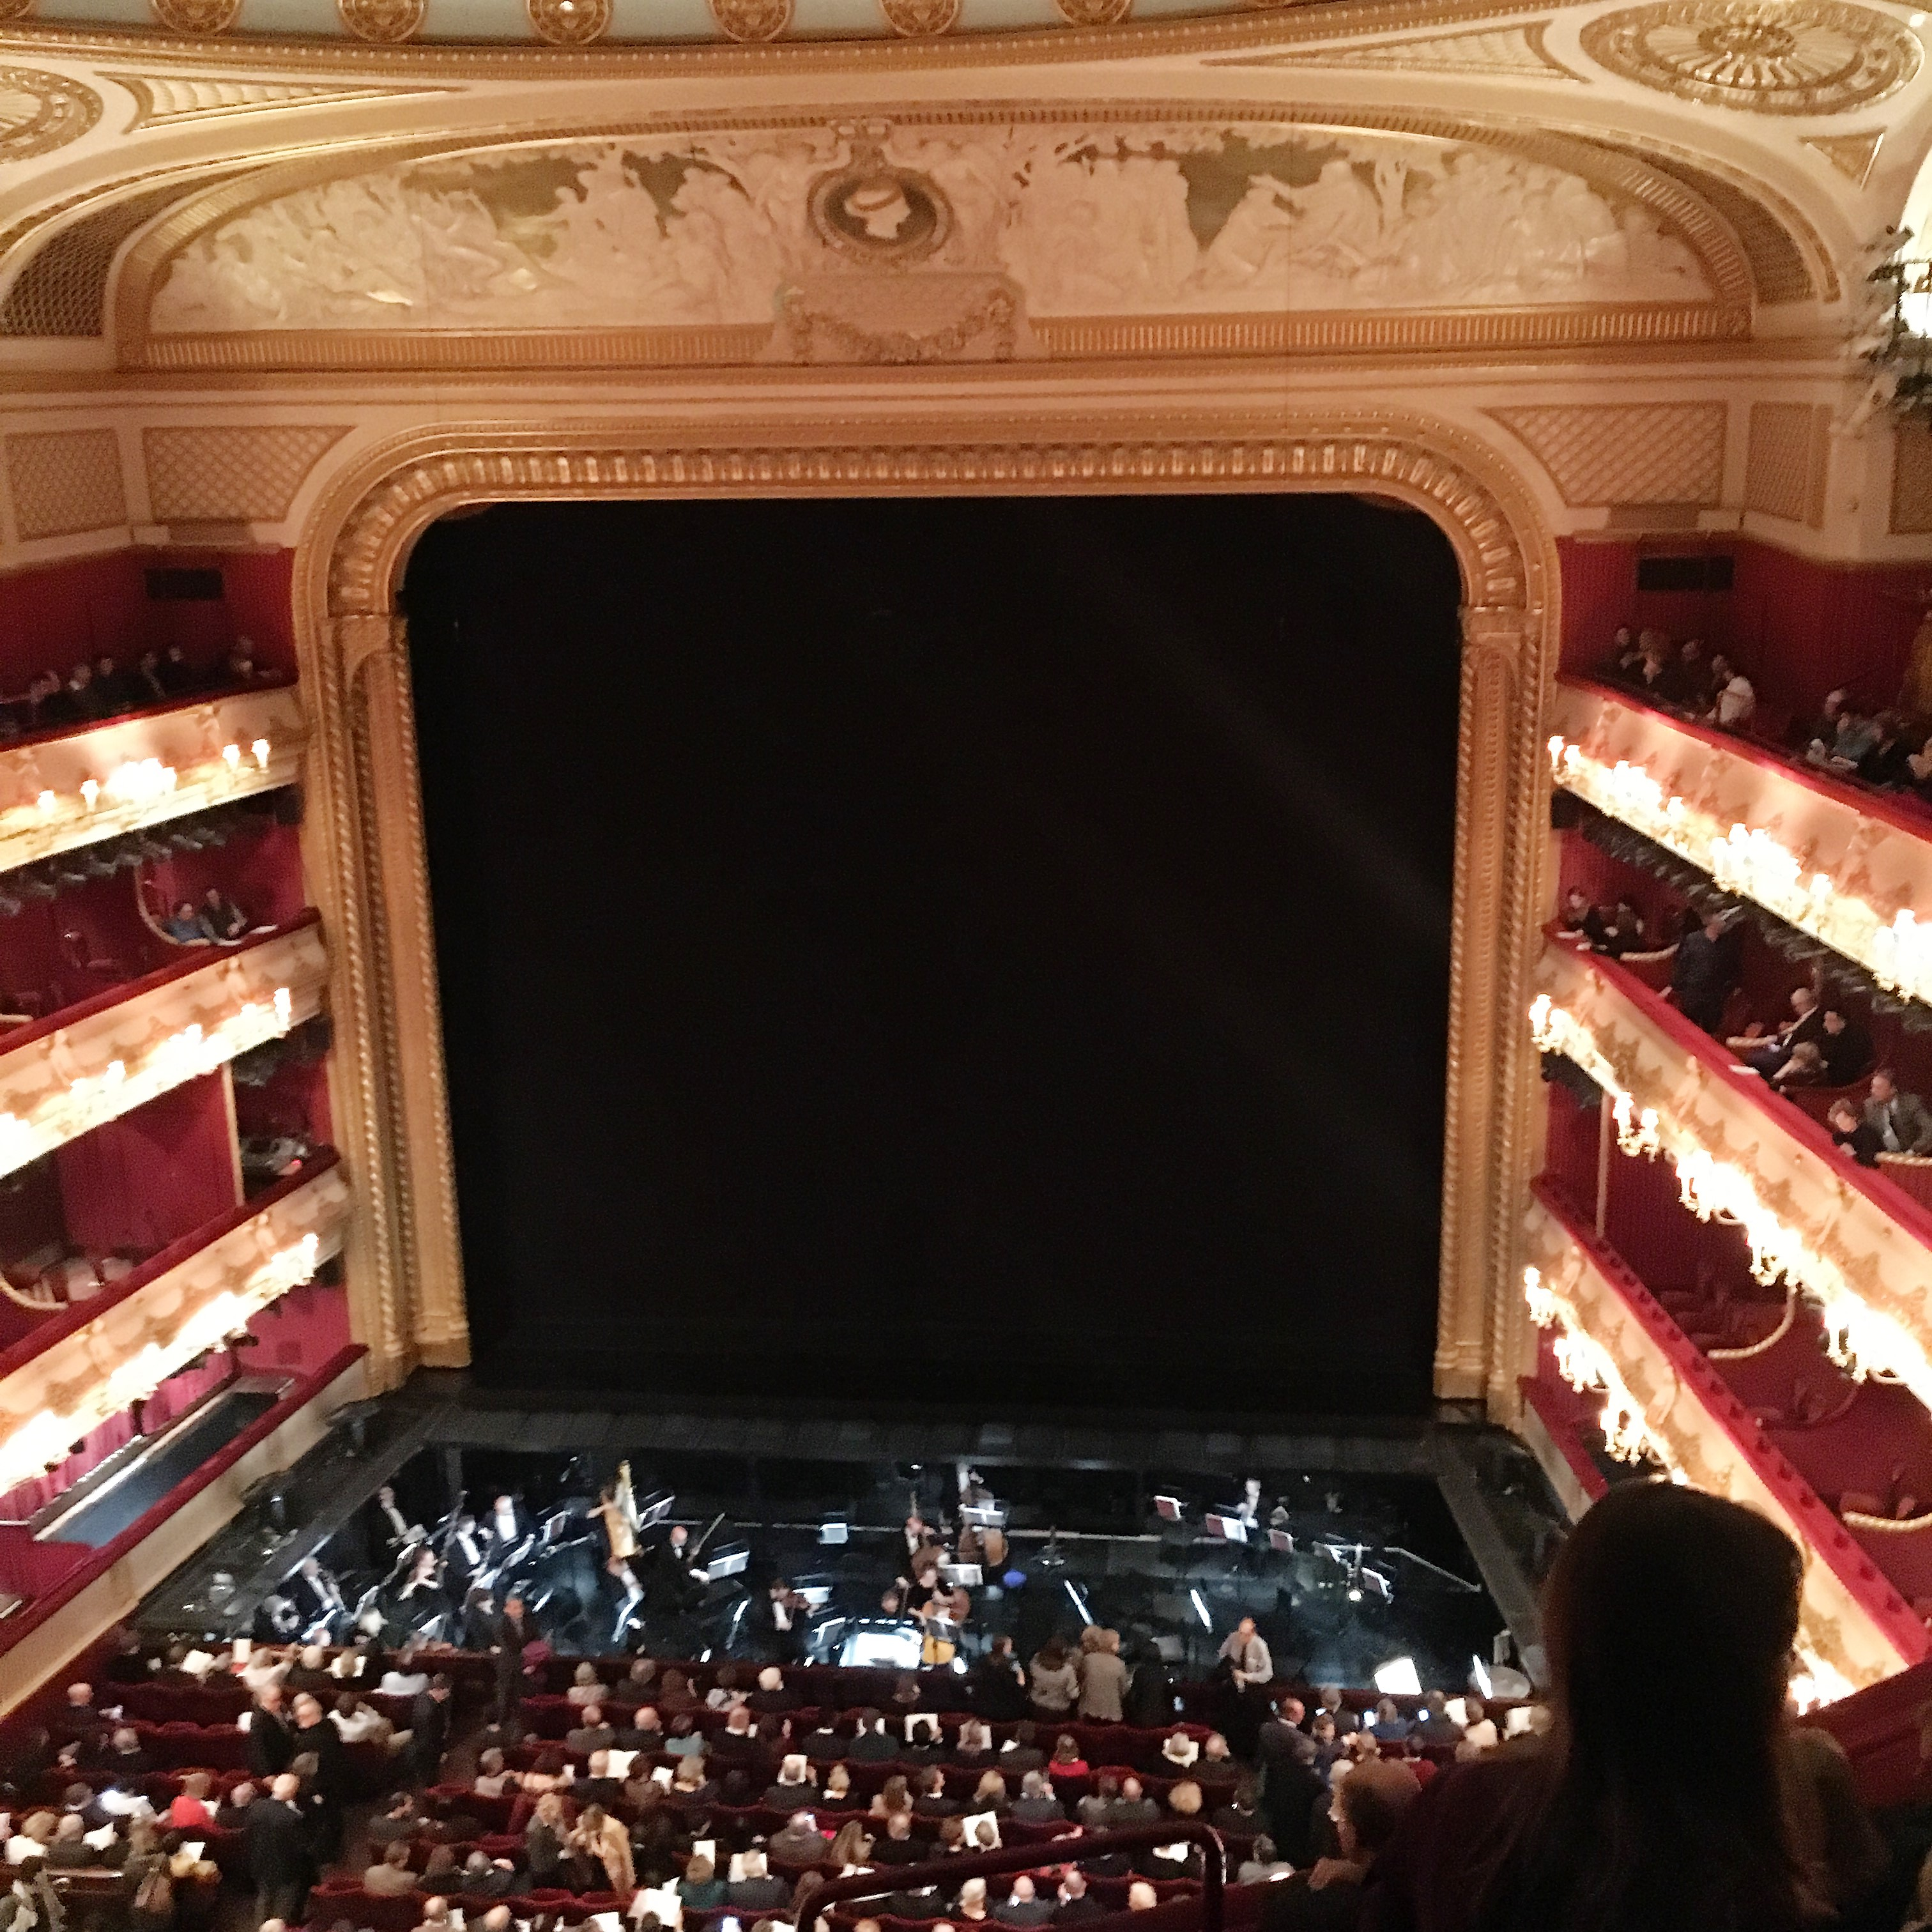 Guest Blog by Sue Hillman: The night @drinksthings went to @RoyalOperaHouse